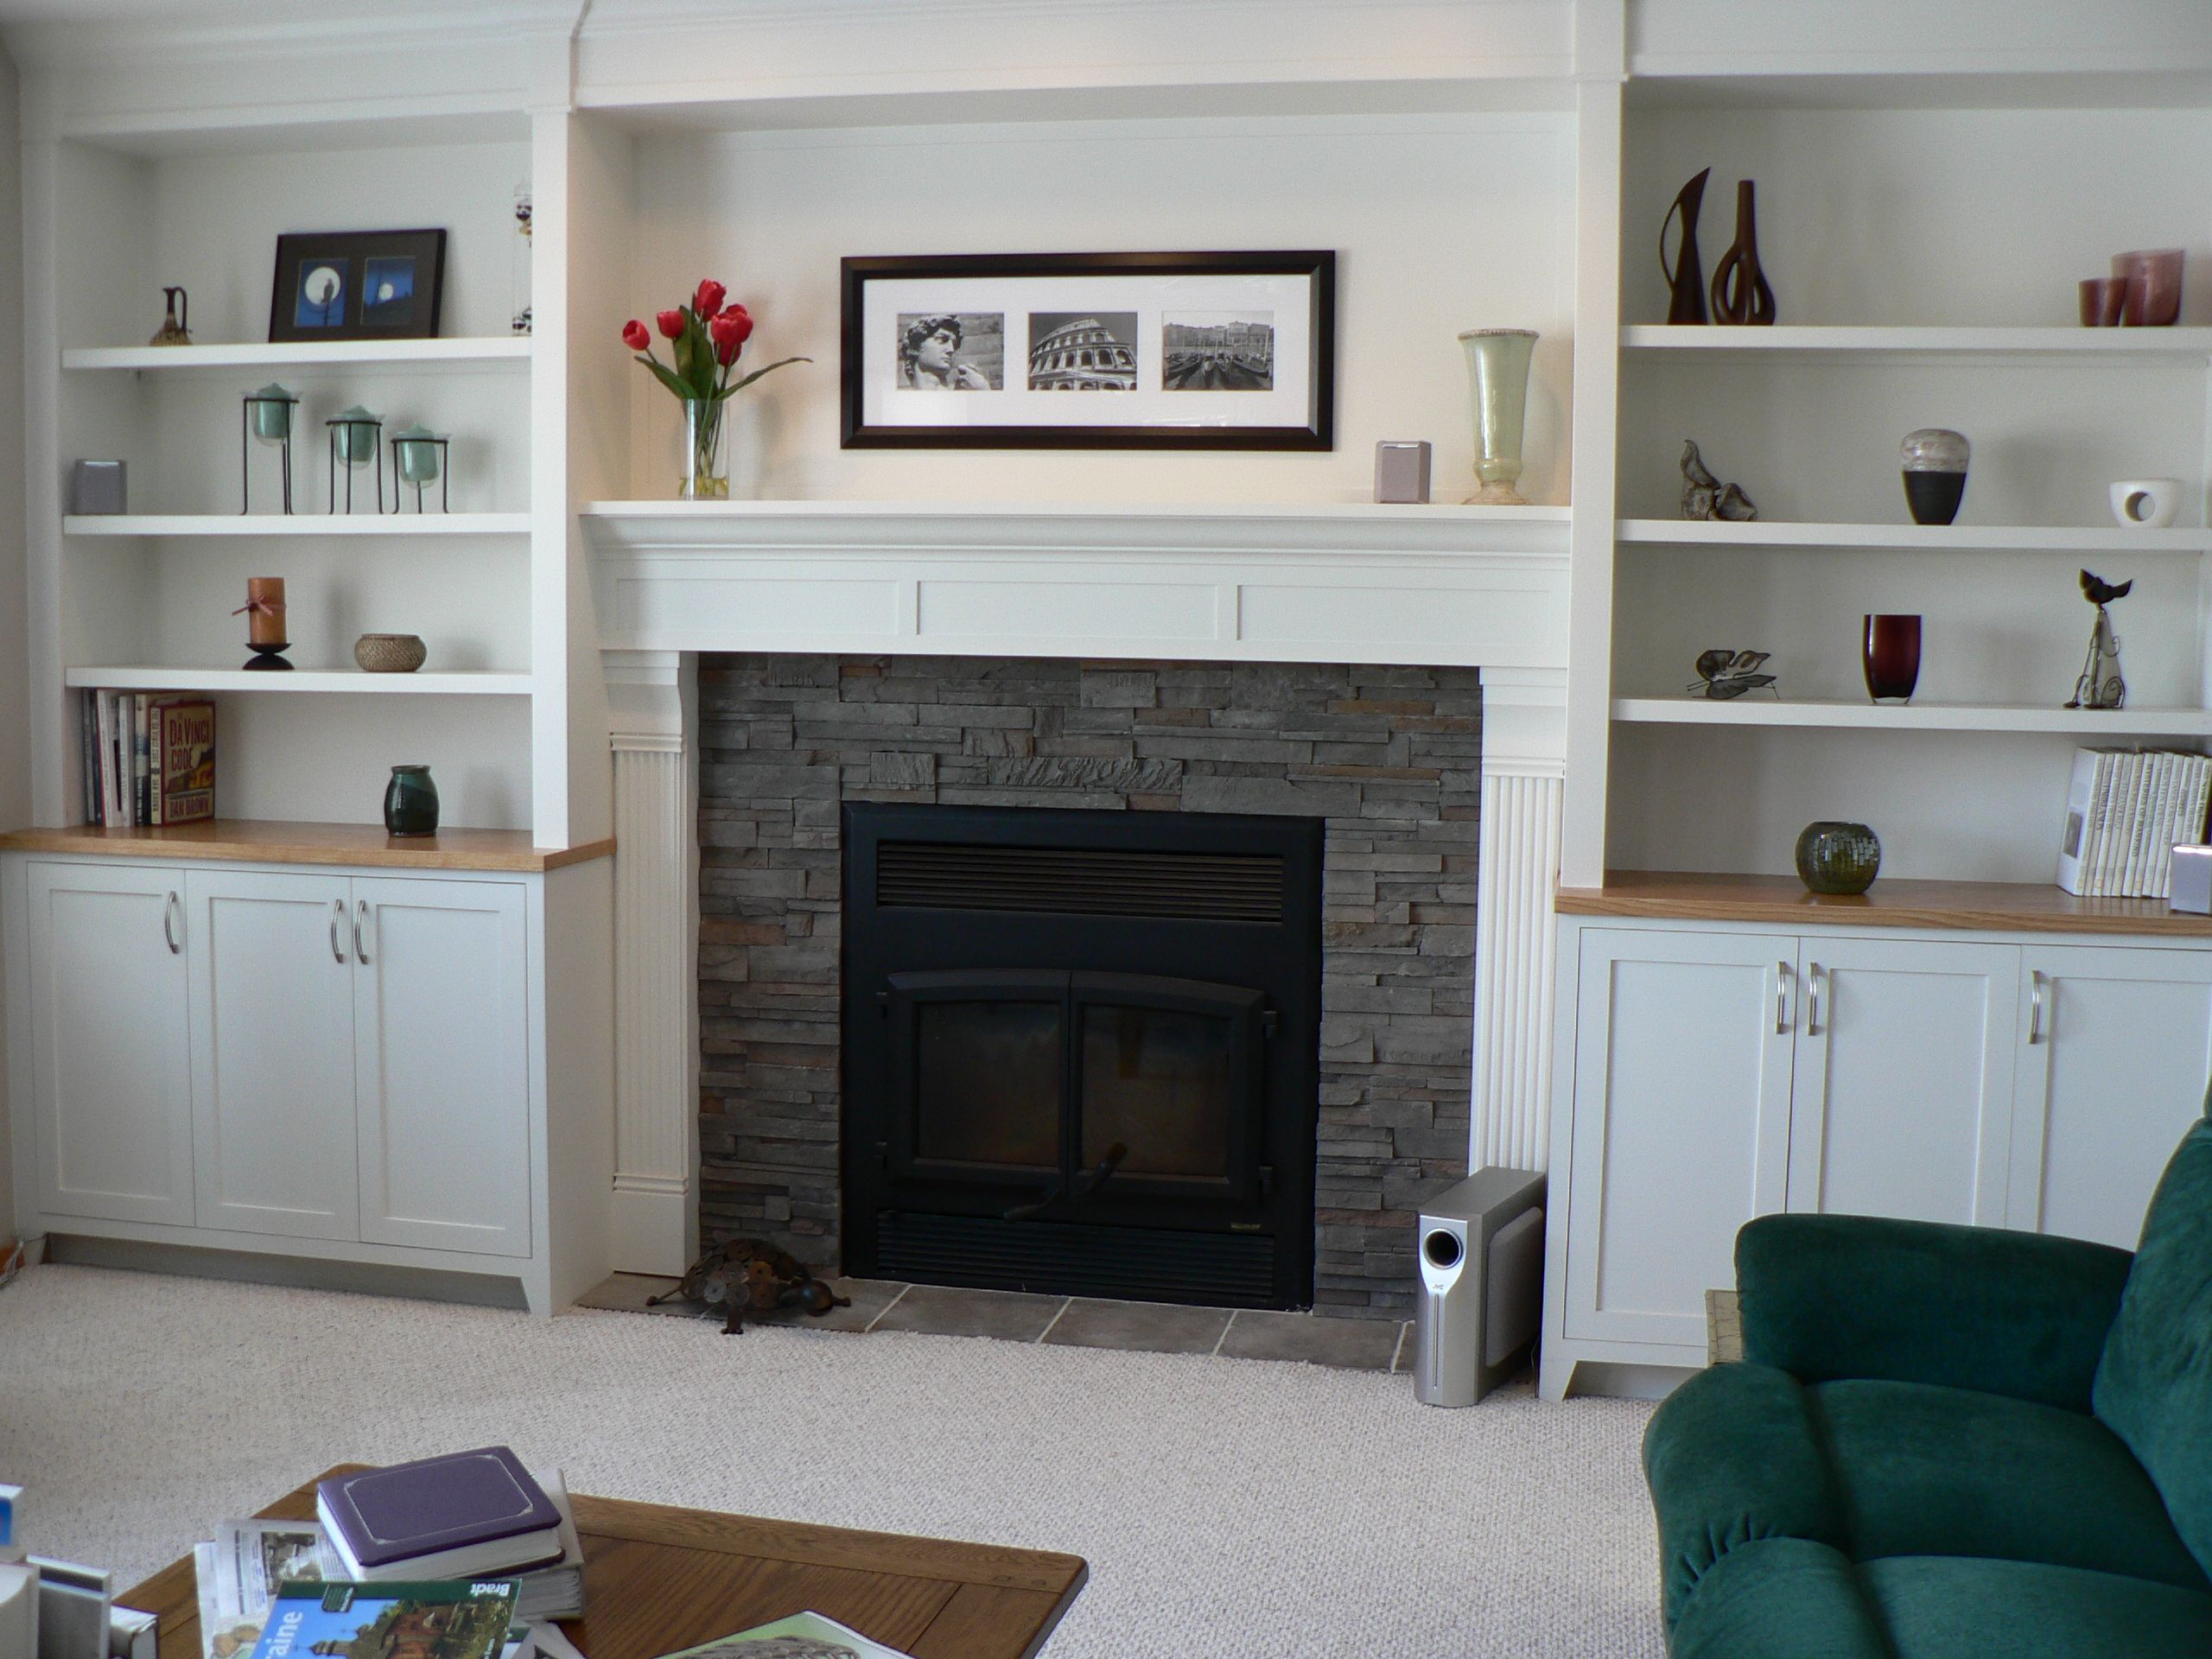 Living Room With Fireplace And Helves fireplaces with bookshelves on each side | shelvesfireplace